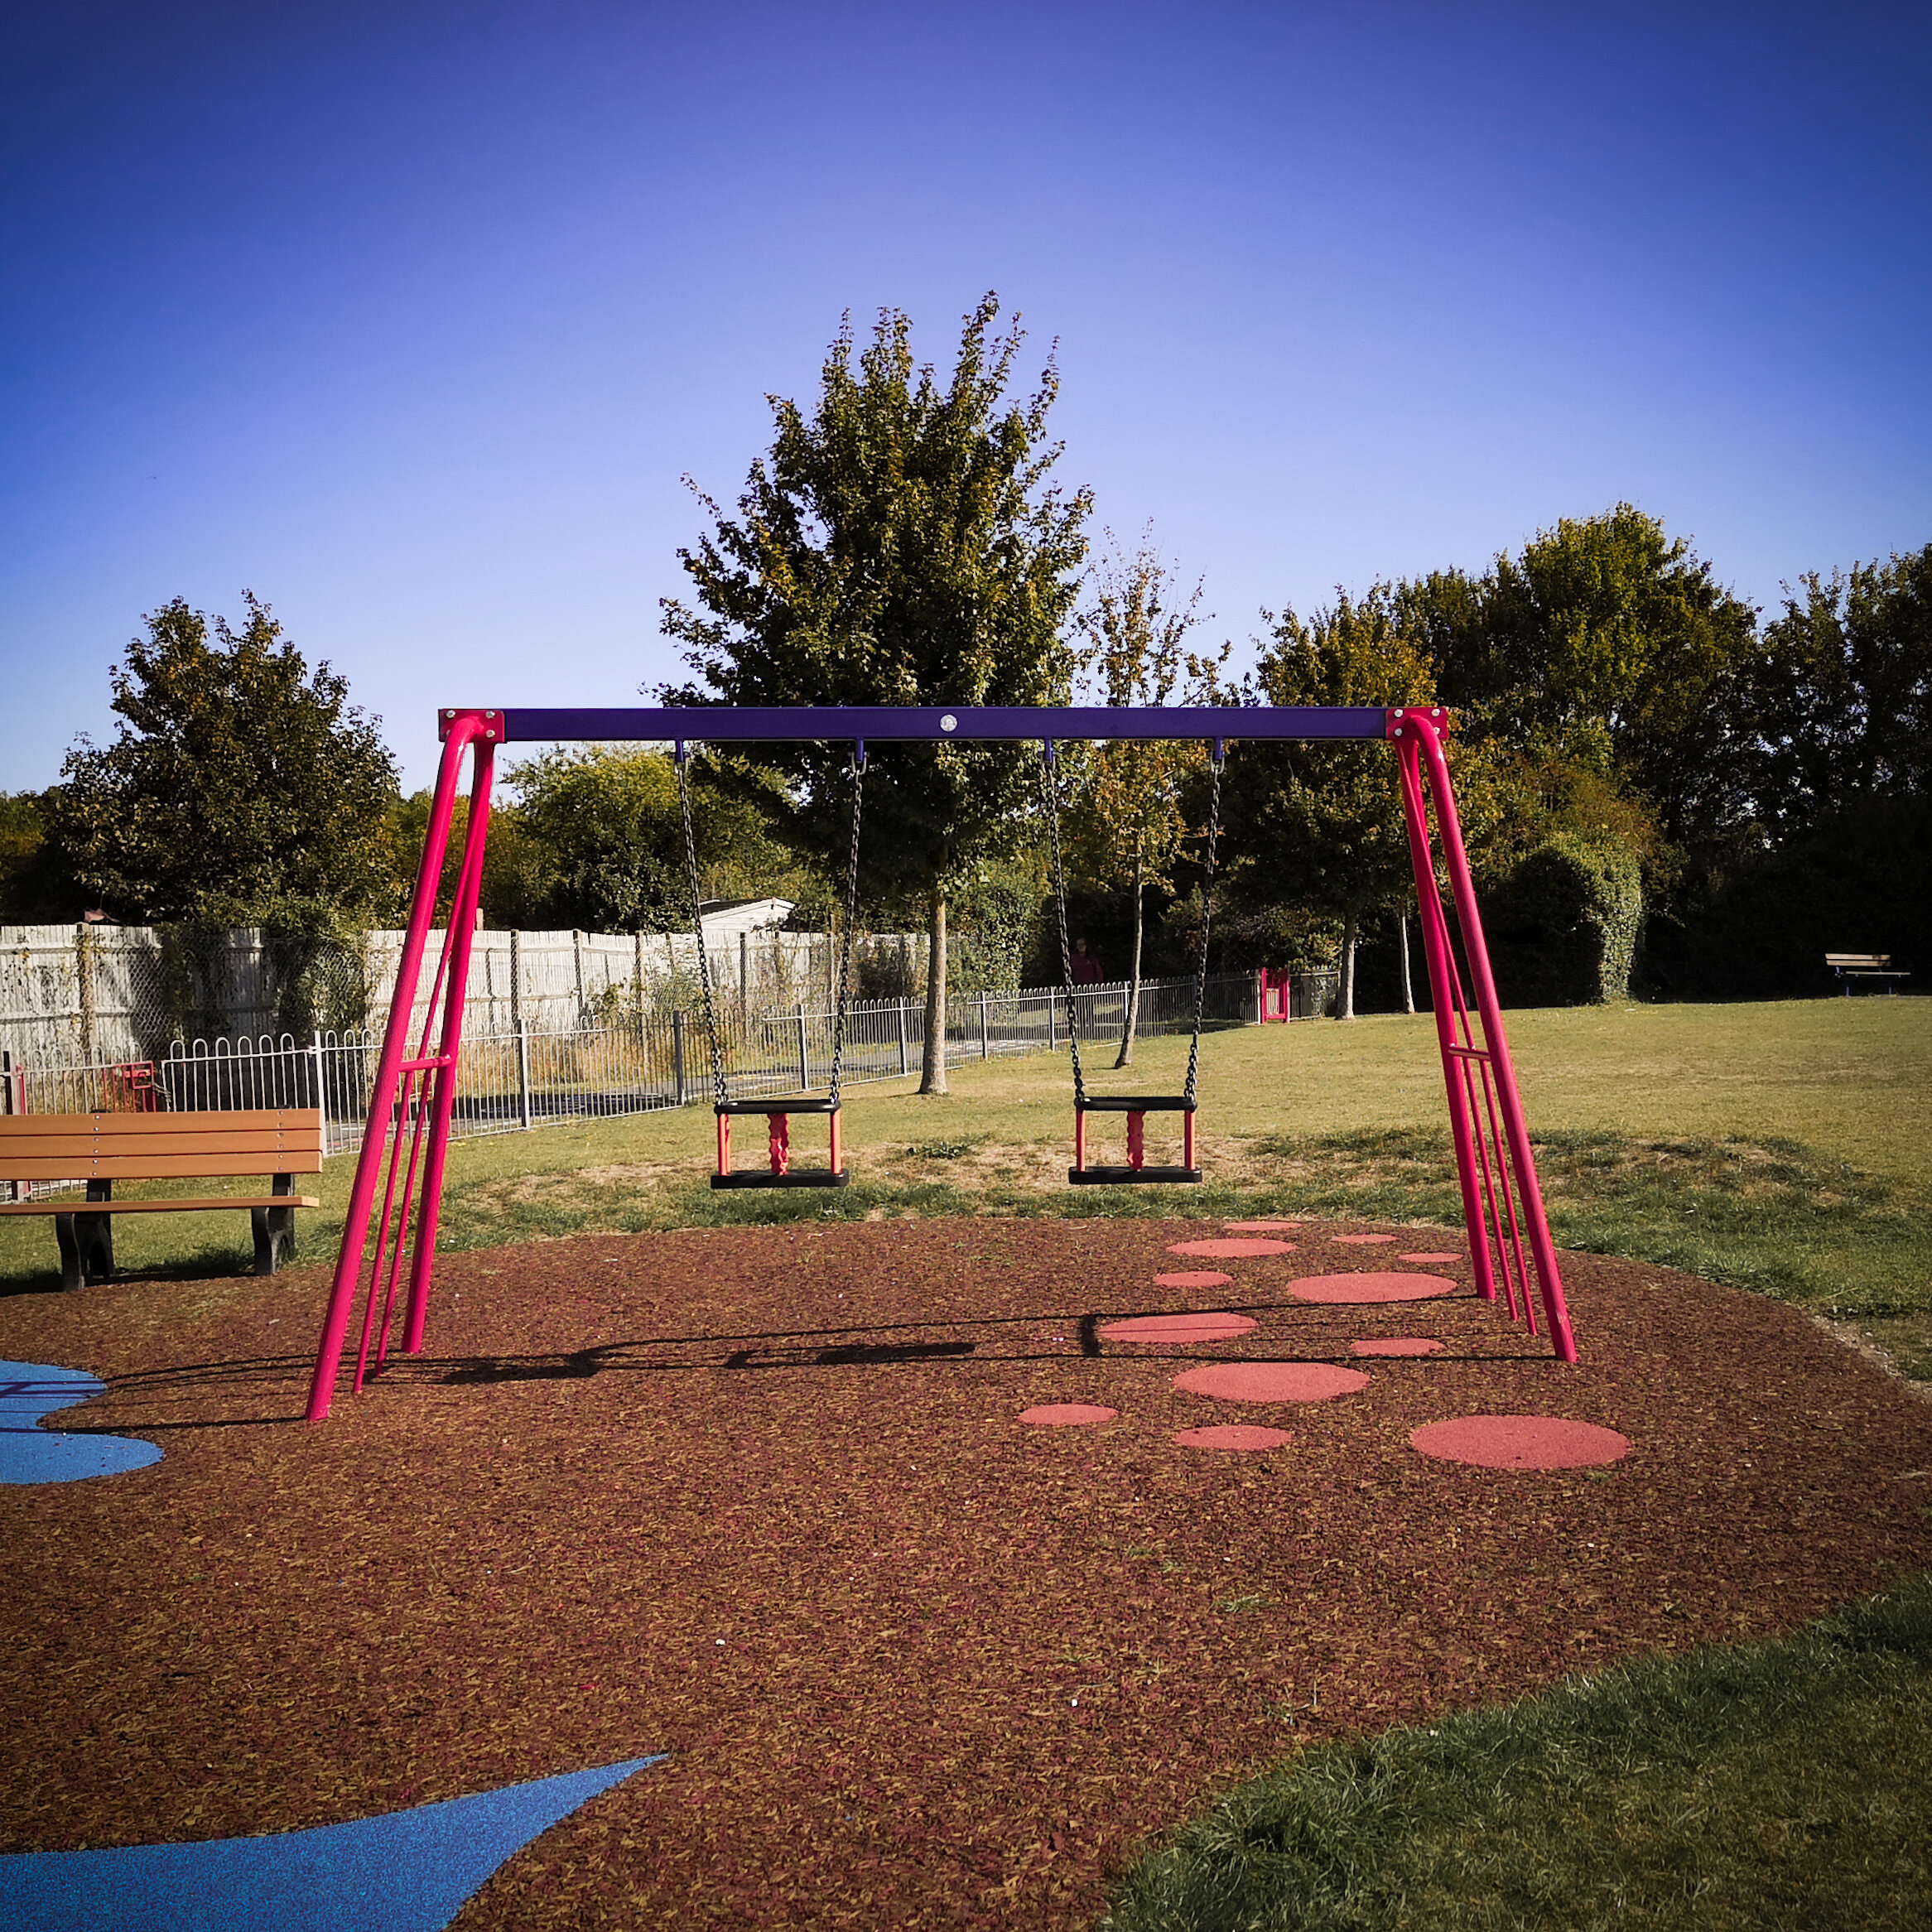 Gordon Ave Playground in Winchester was opened in Autumn 2019